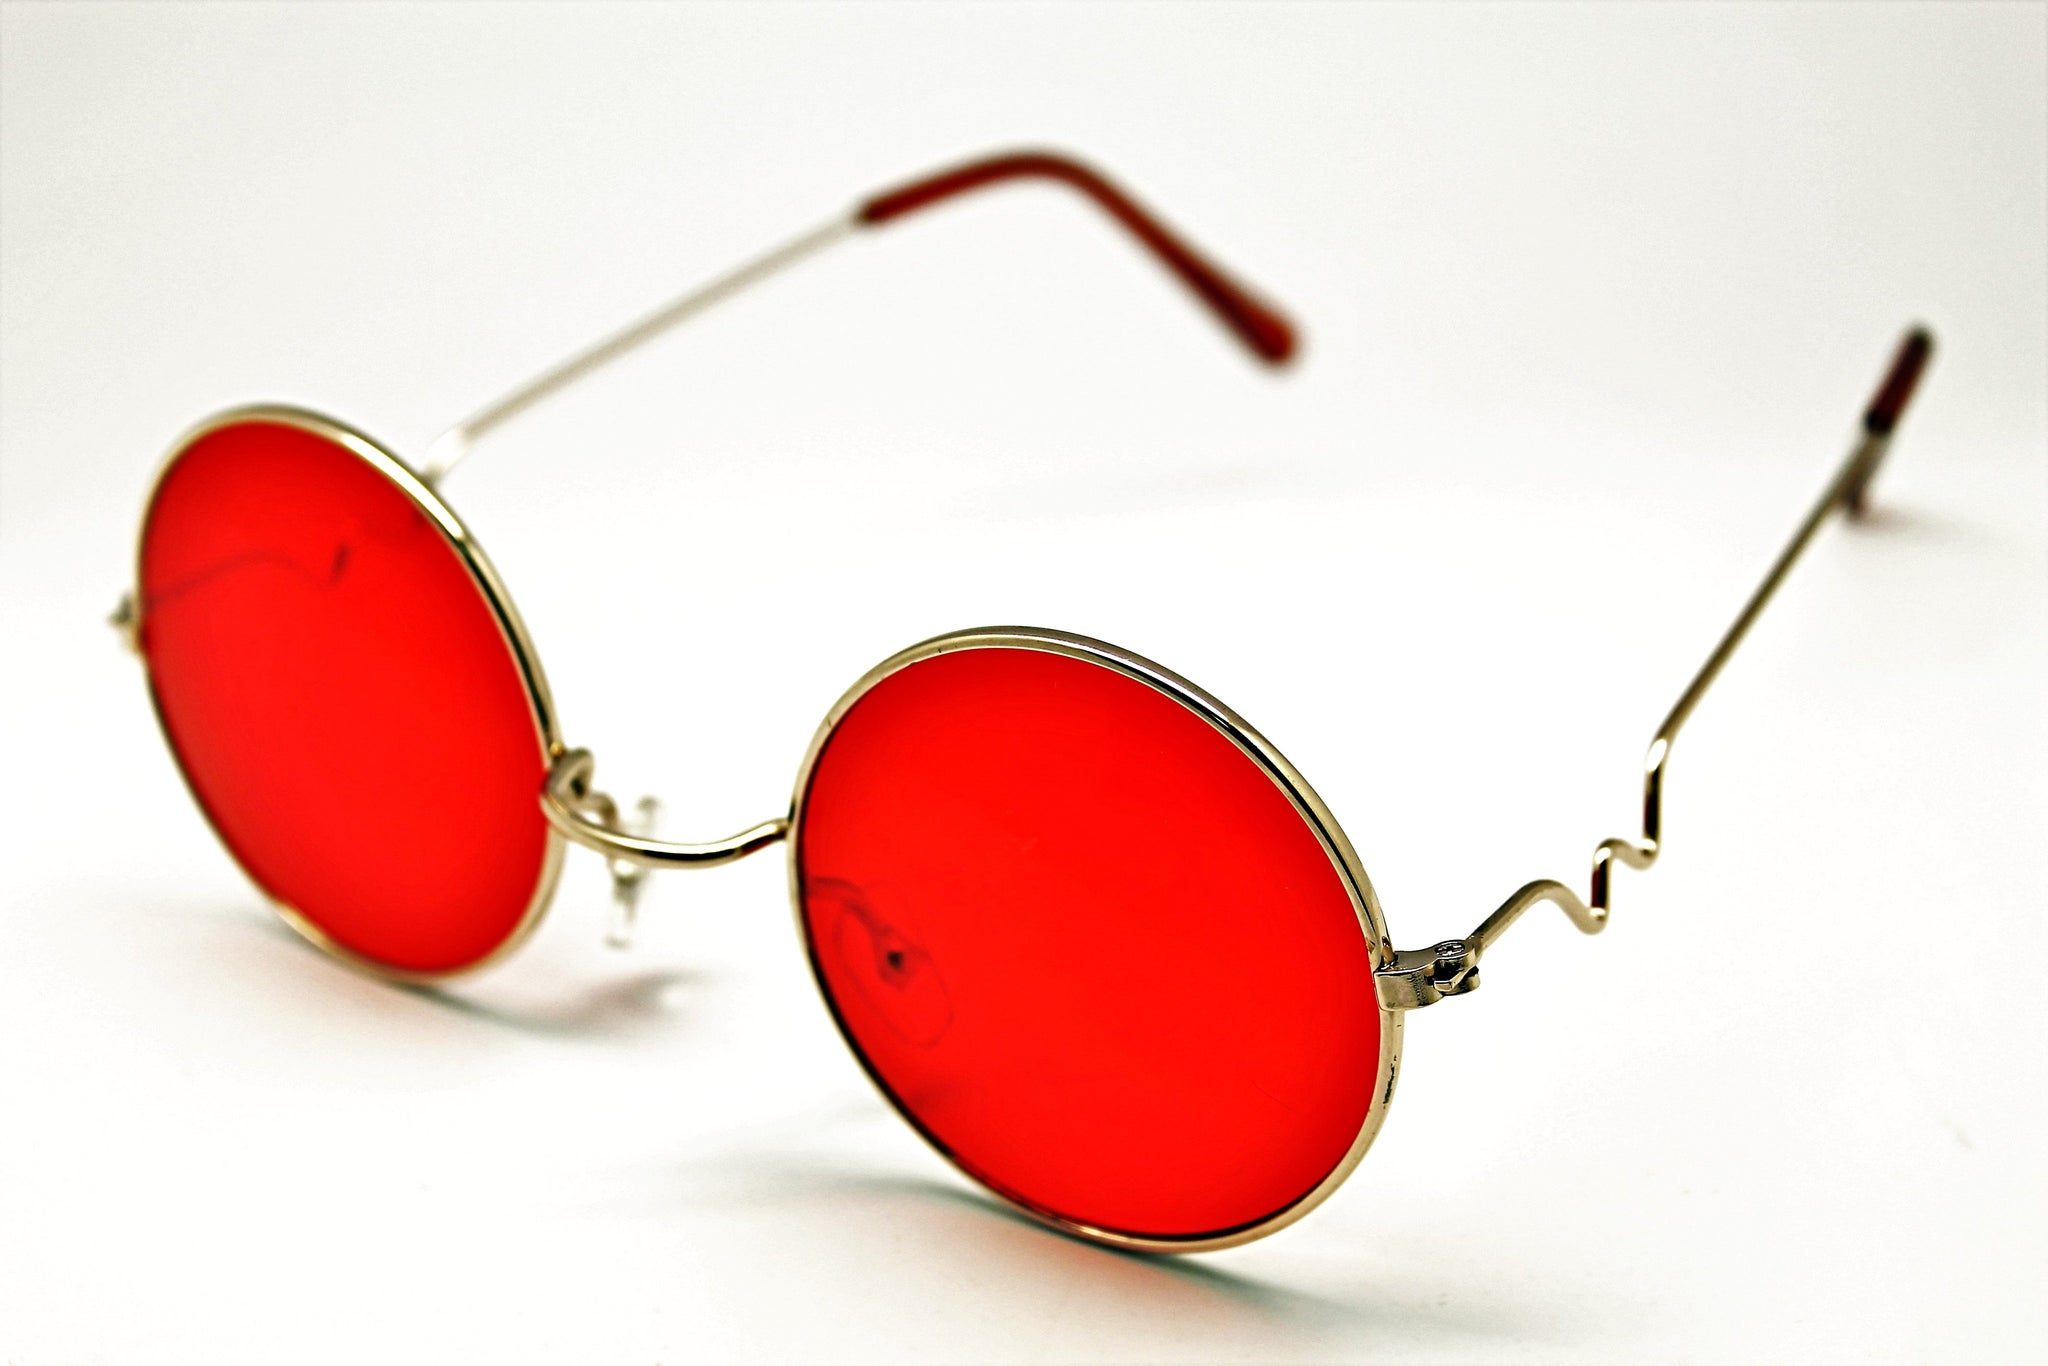 8aee04e0bd2 Lennon style sunglasses with red lenses and gold frames